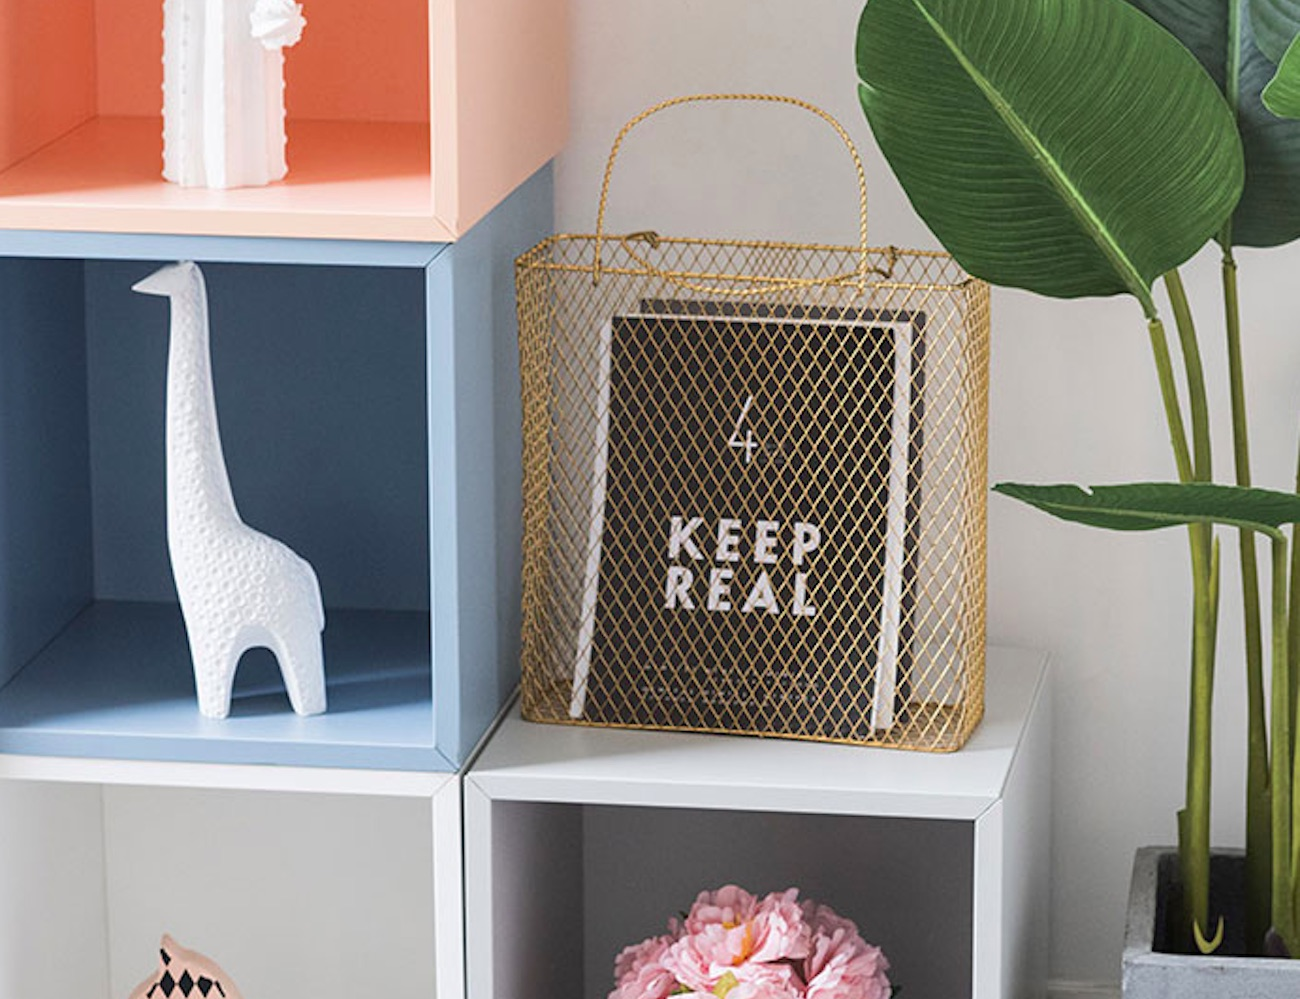 Geometric Design Metal Magazine Rack has a spot for anything